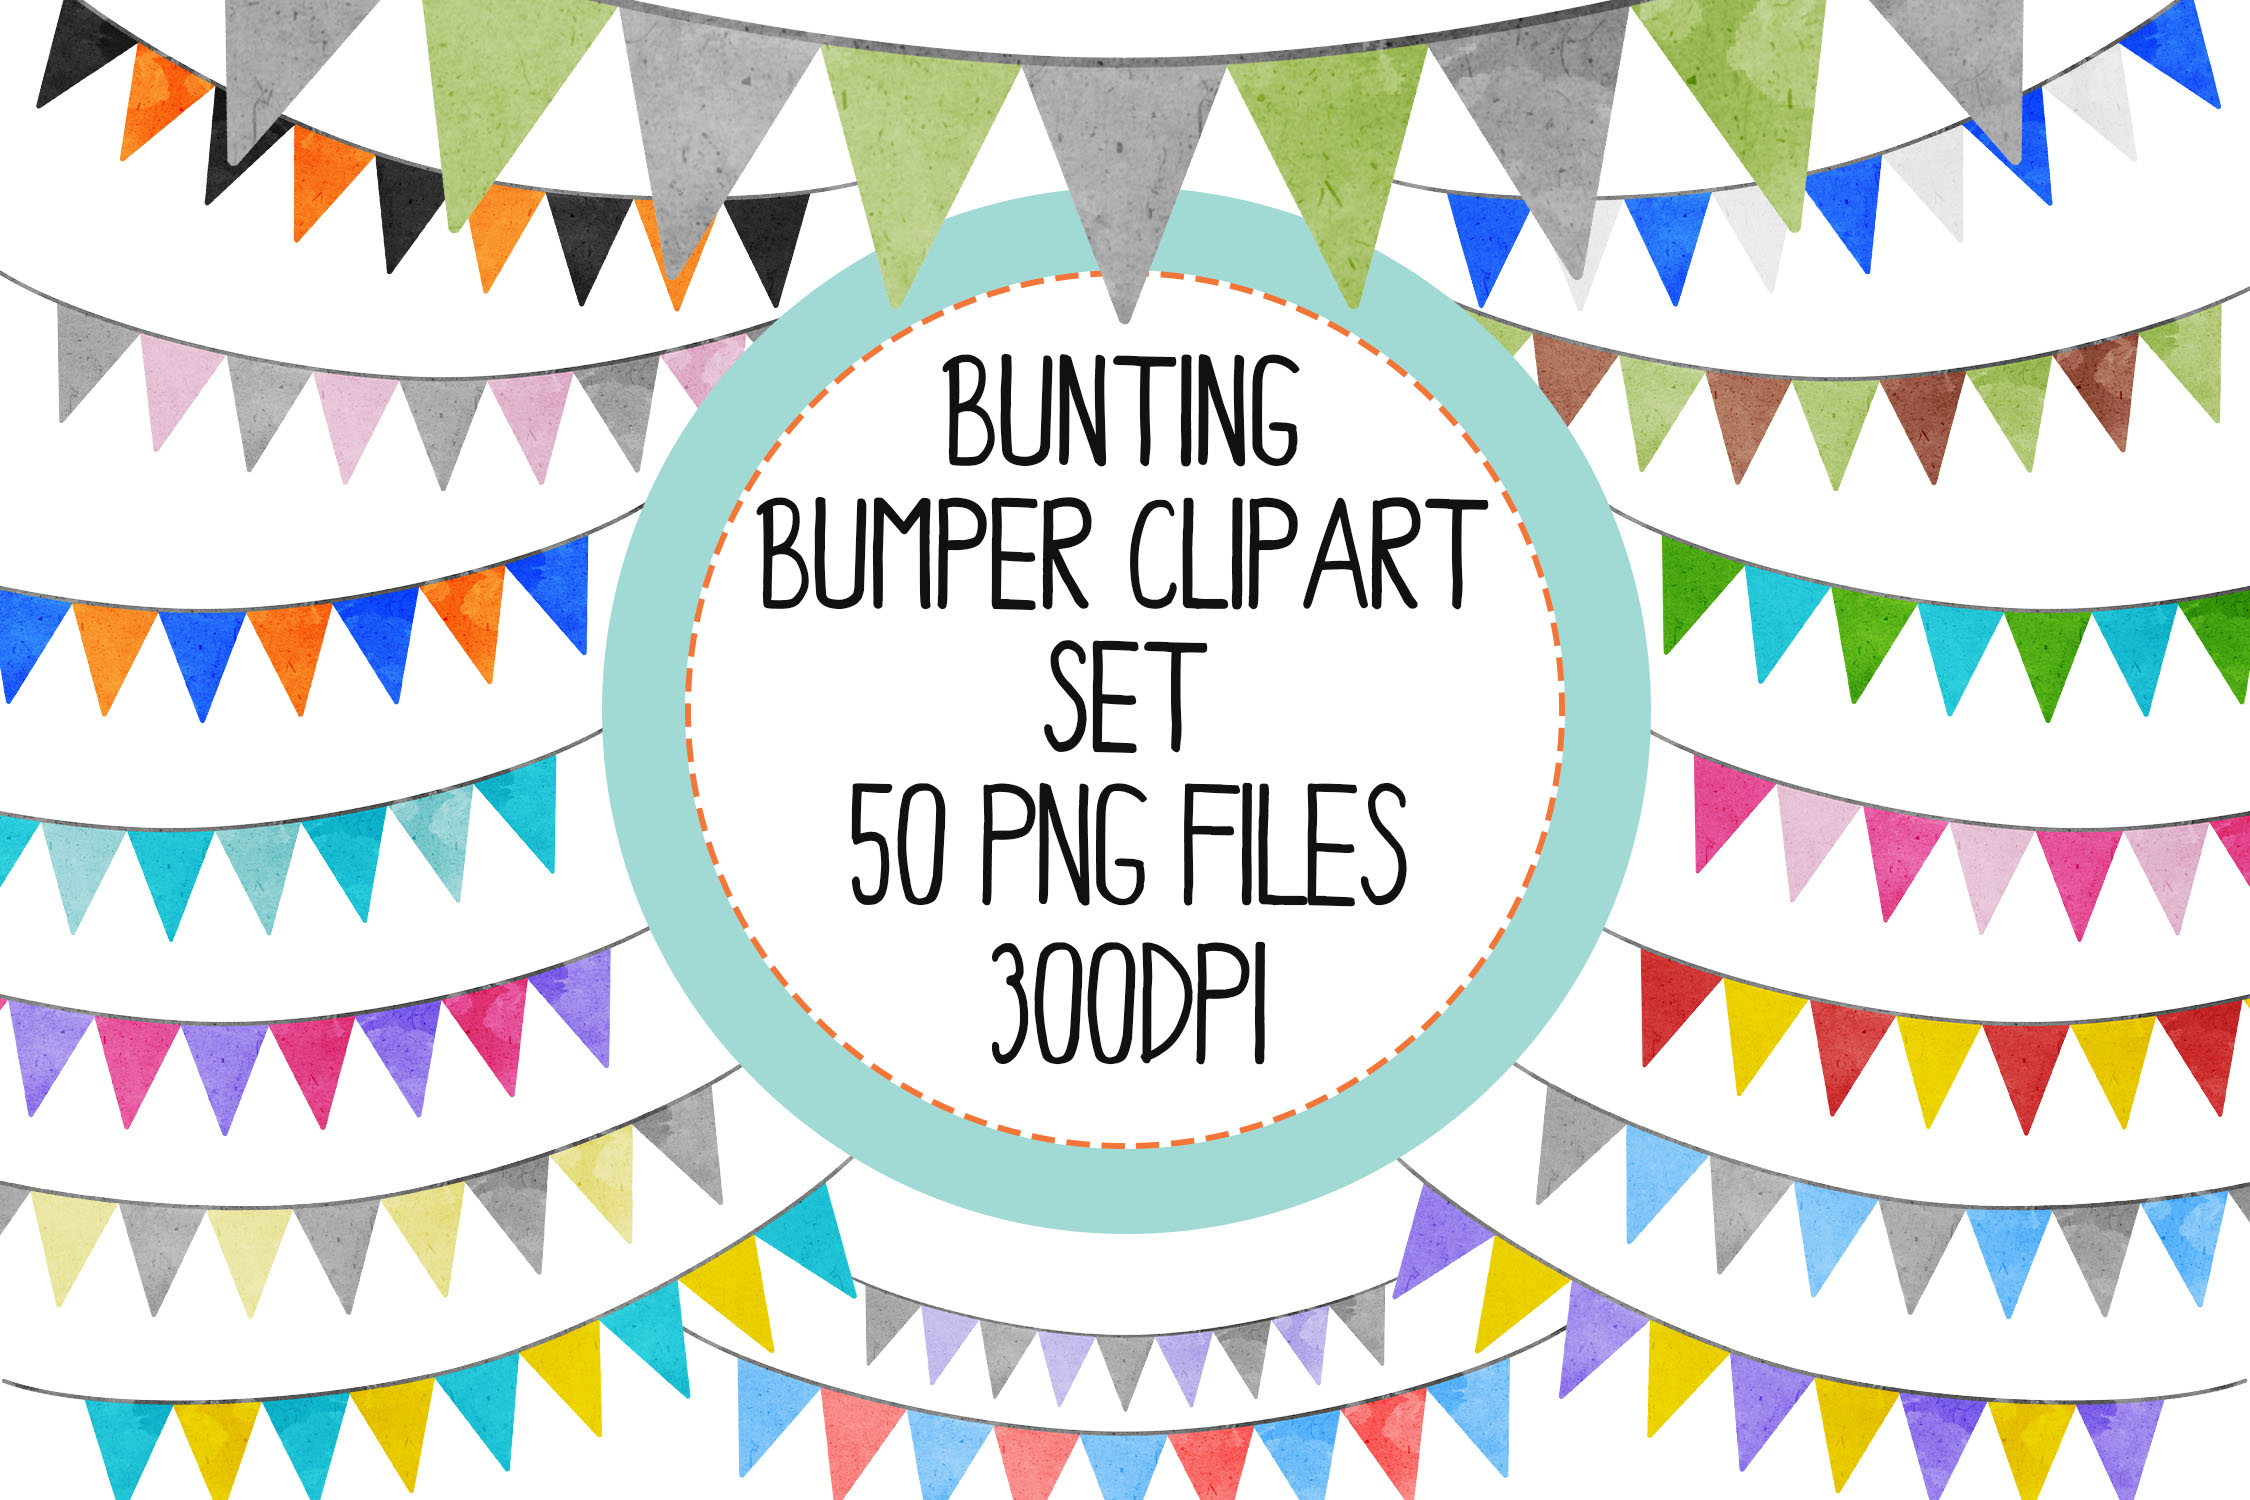 Watercolor Bunting Bumper Clipart Set example image 1